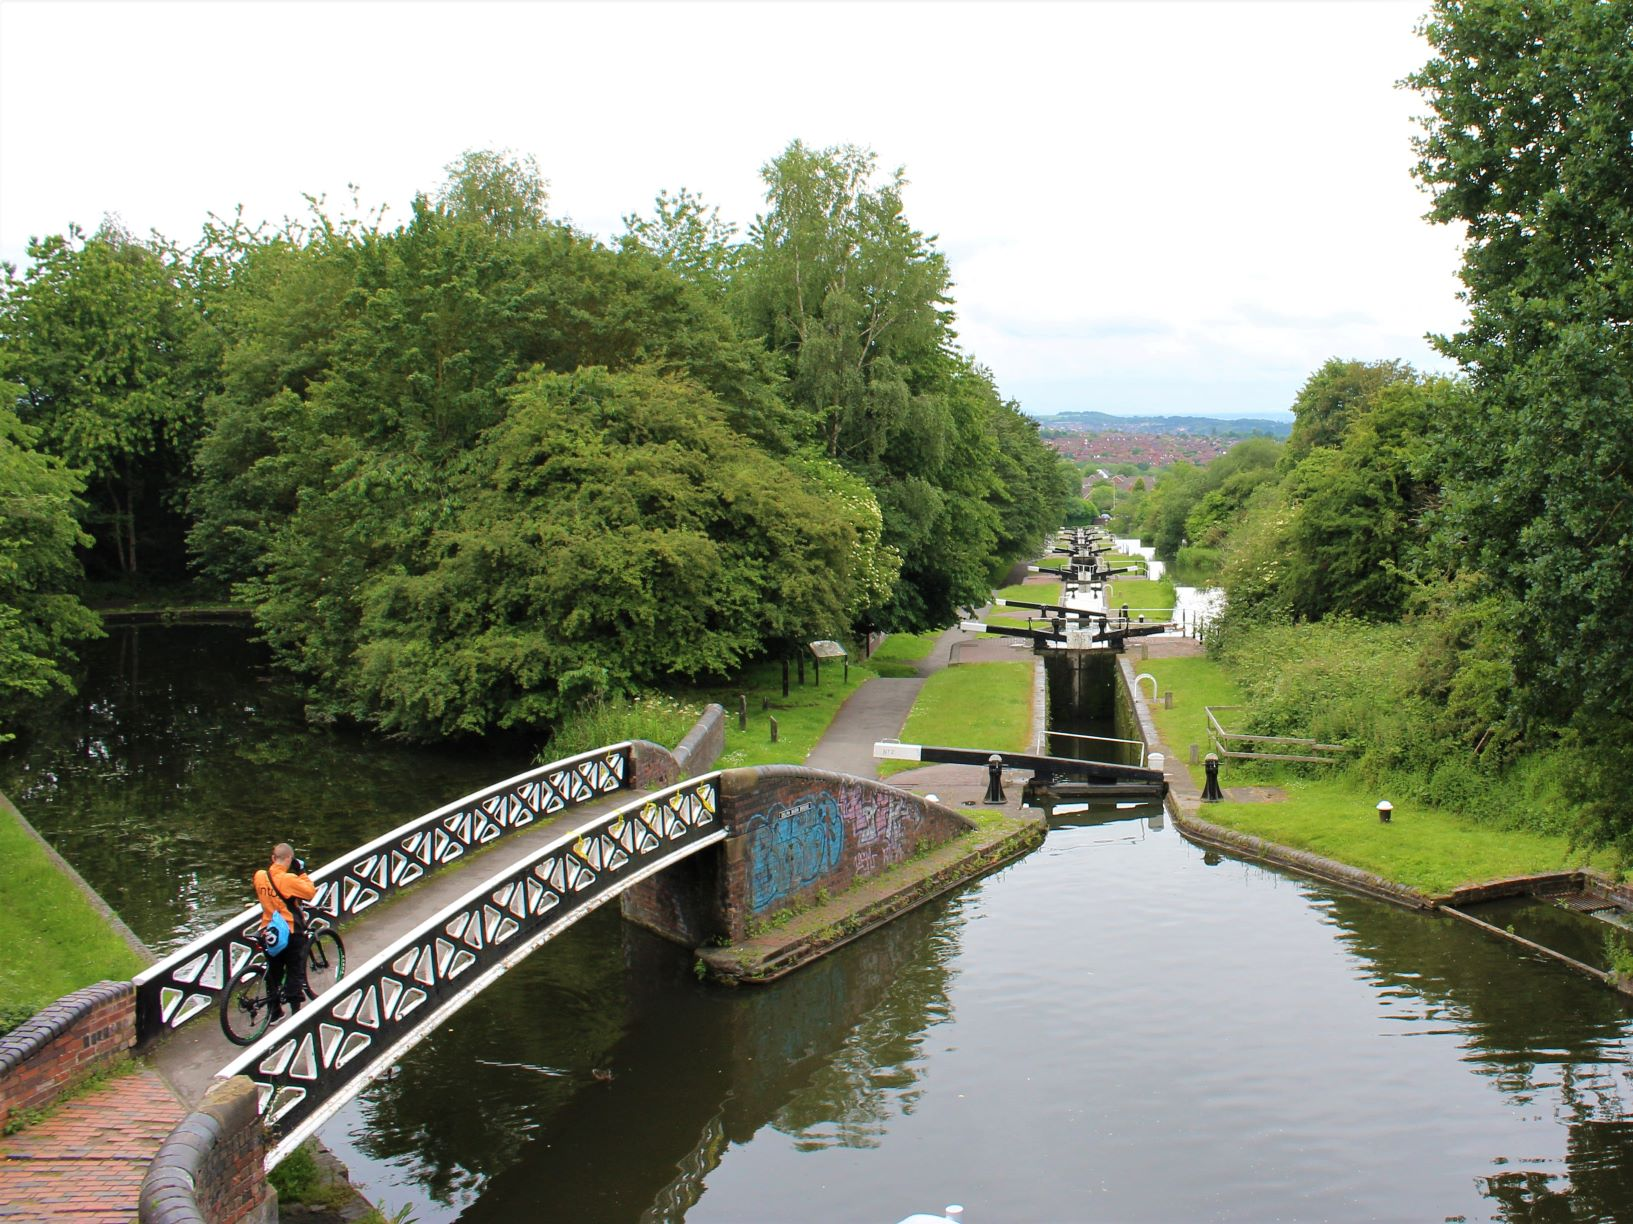 Dudley No 1 canal 9 Locks